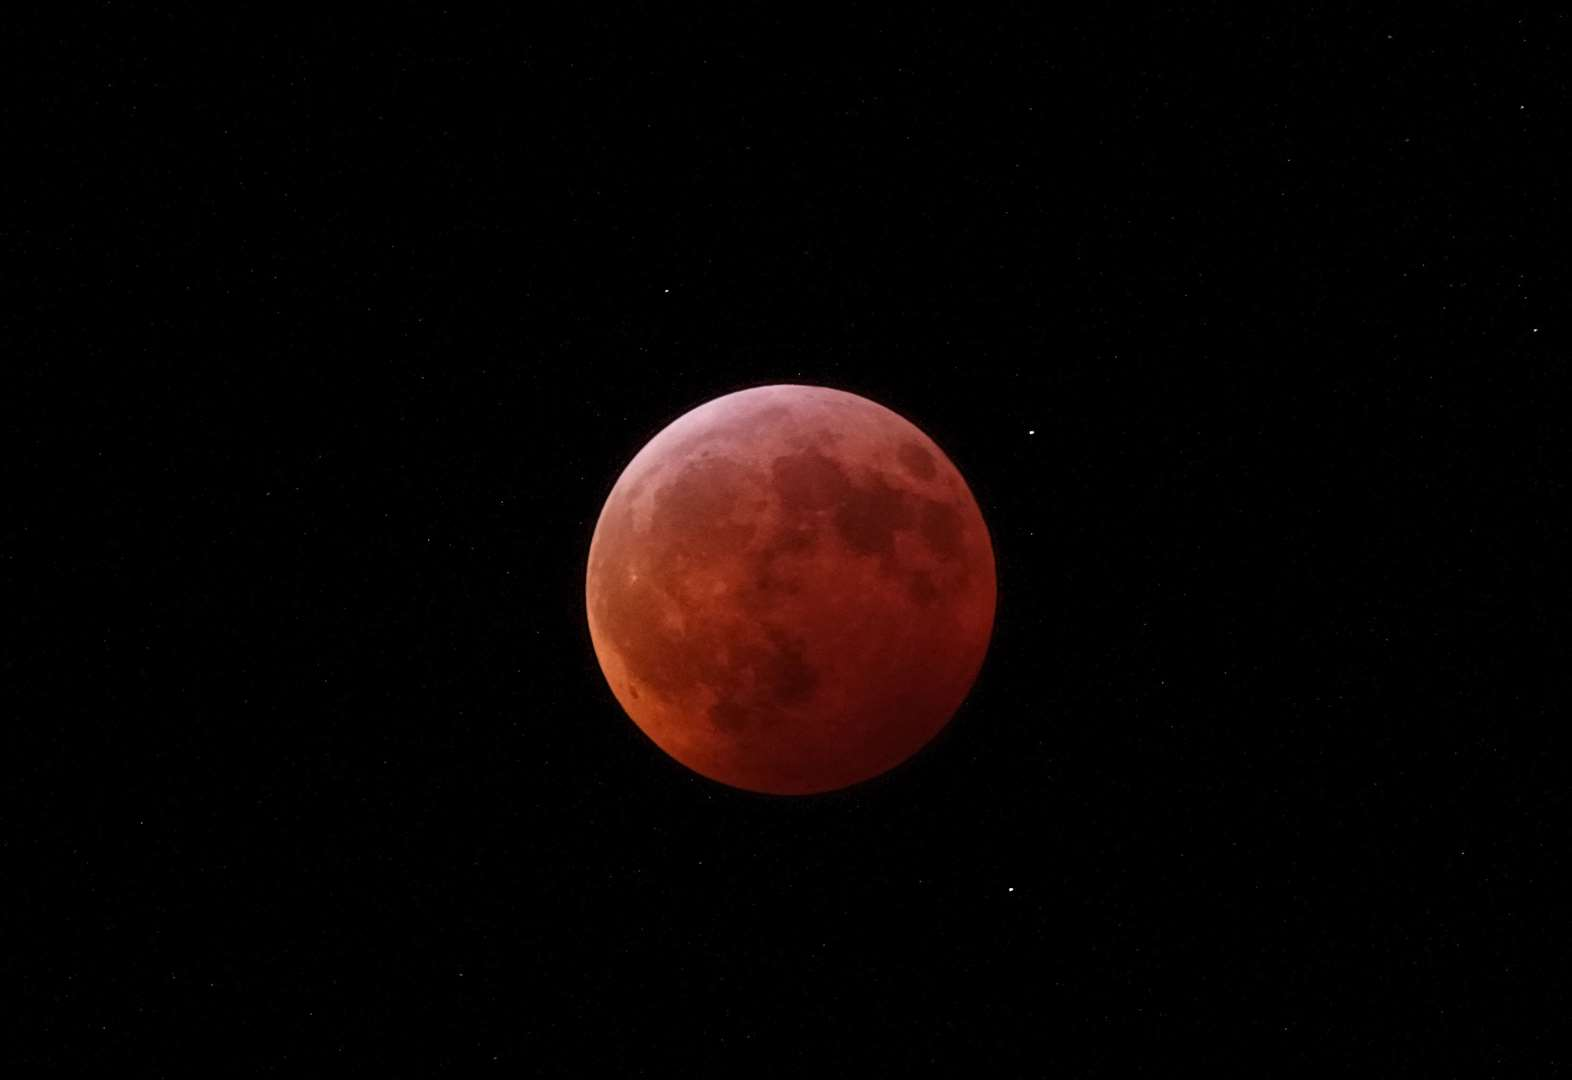 Partial lunar eclipse may be seen from in and around Newmarket